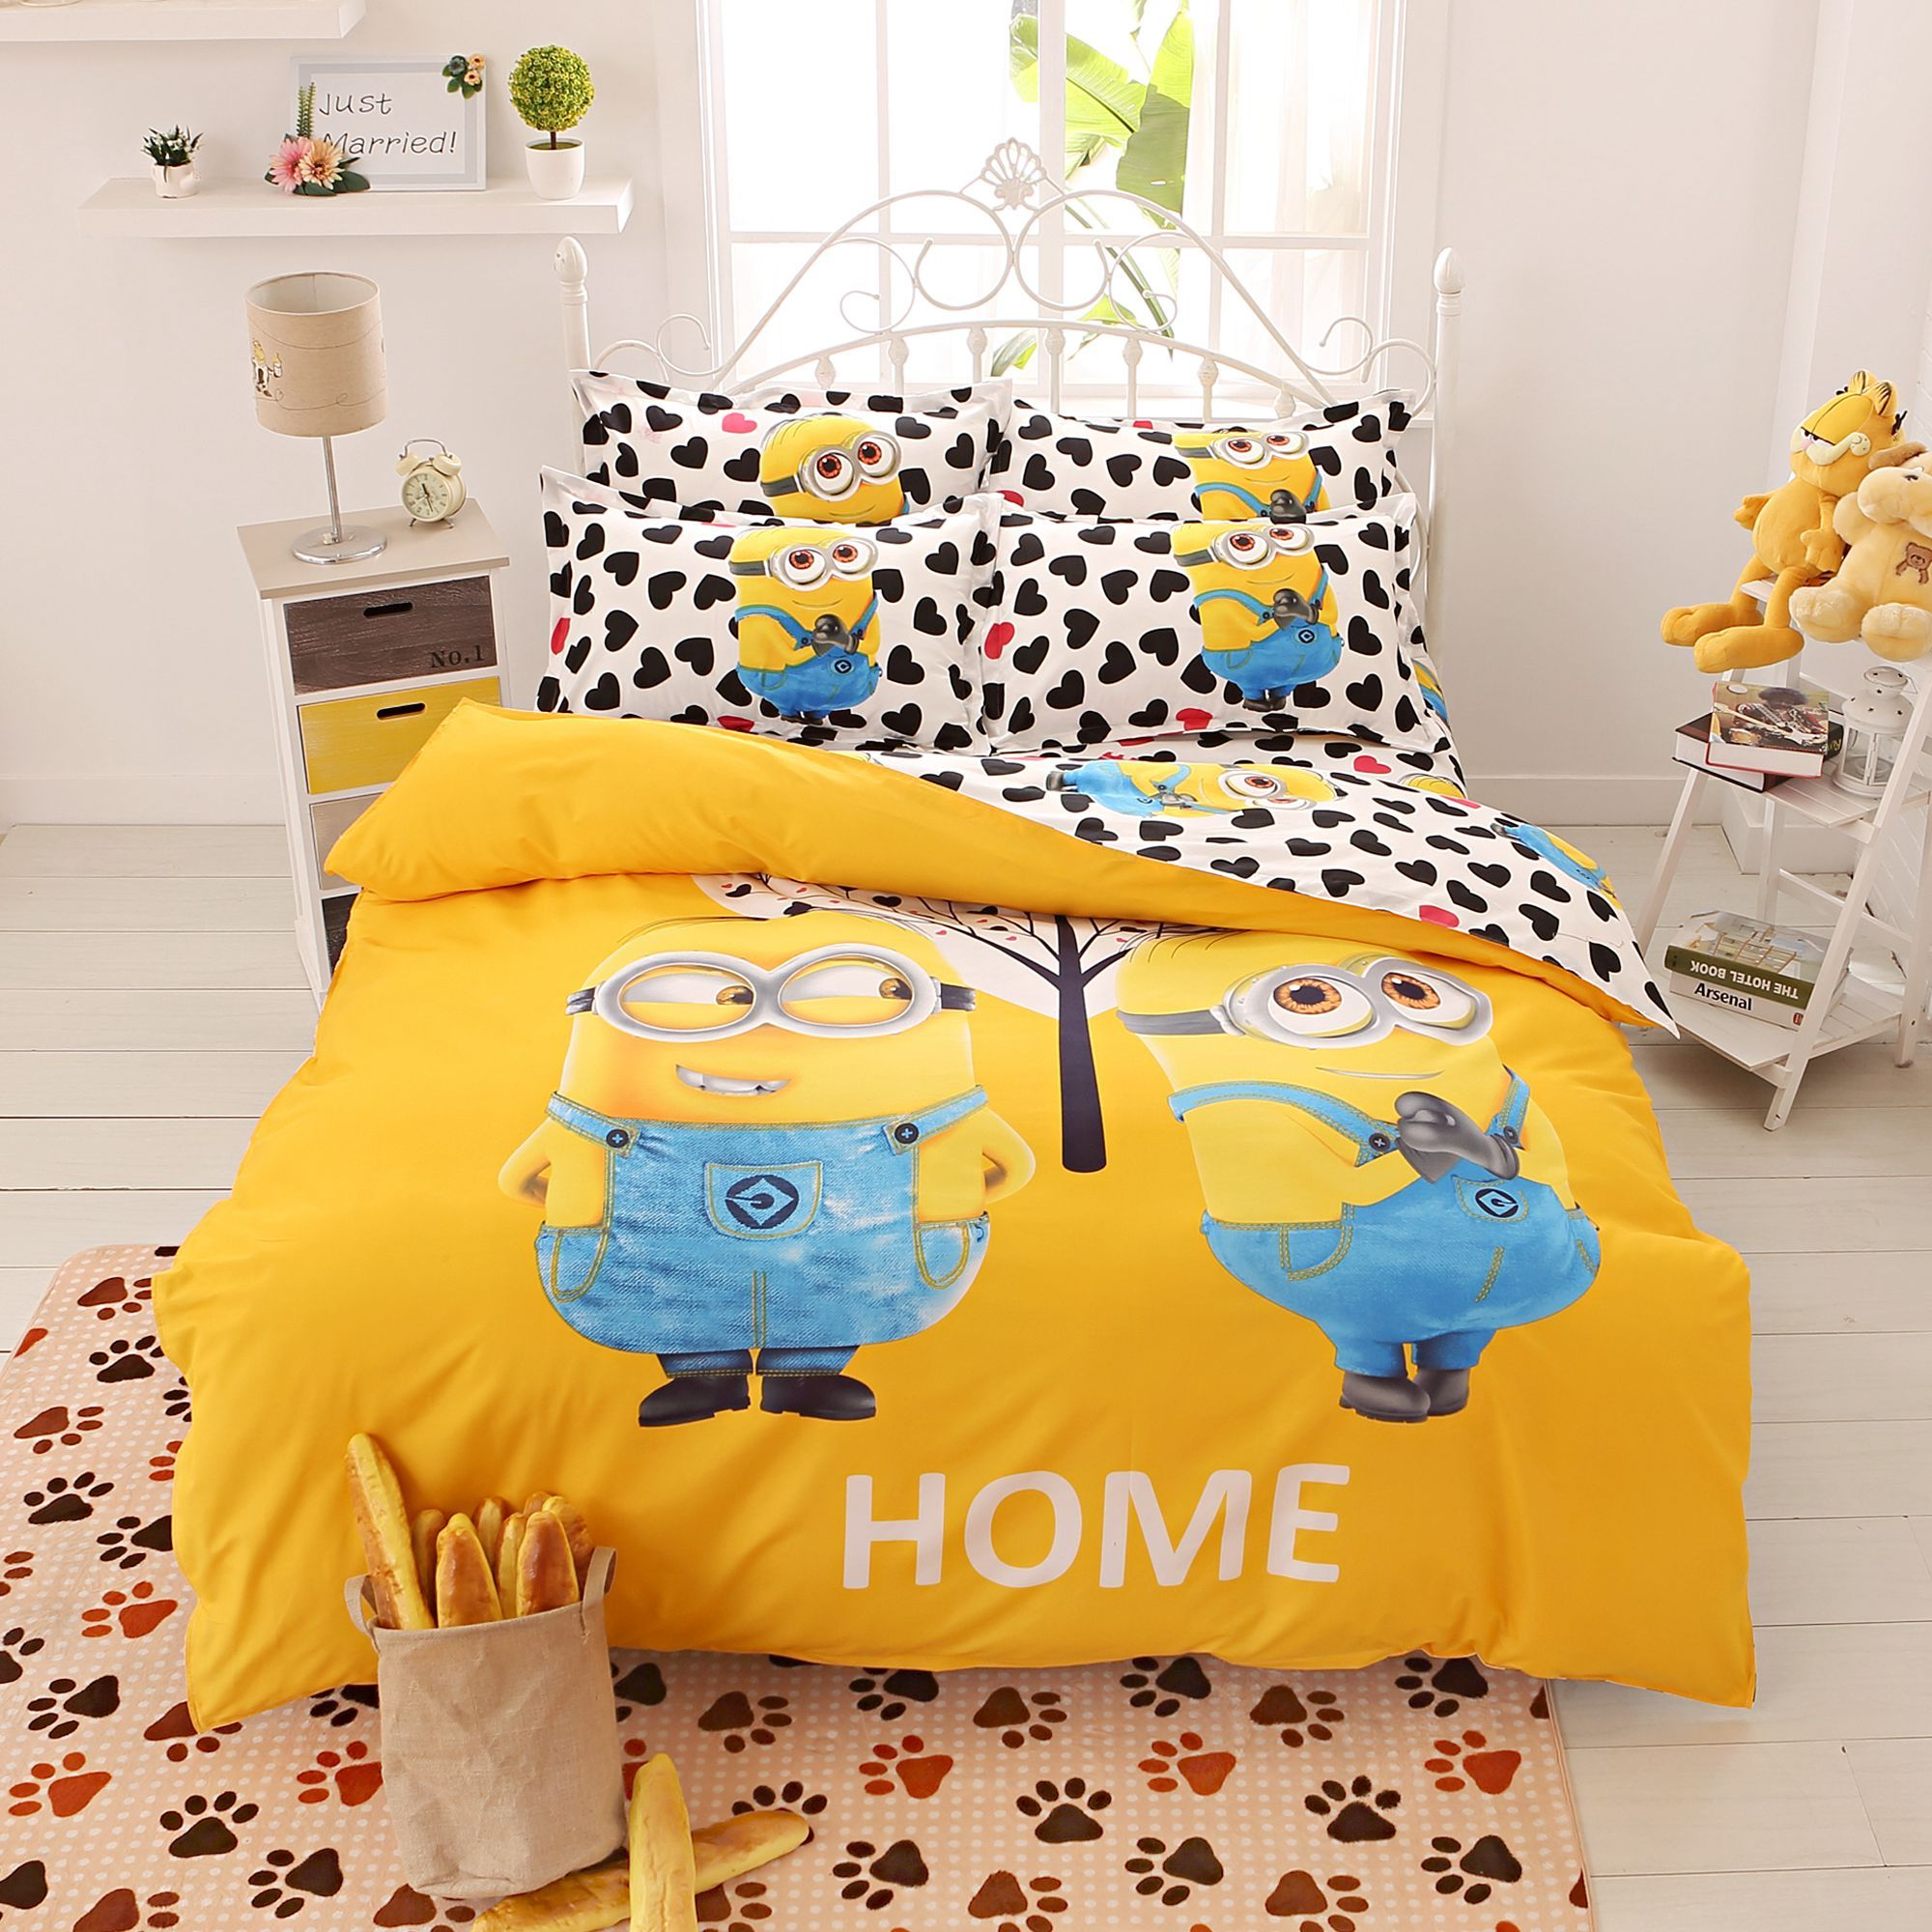 pas cher bande dessin e ensemble de literie 4 pcs impression cama minions literie housse de. Black Bedroom Furniture Sets. Home Design Ideas